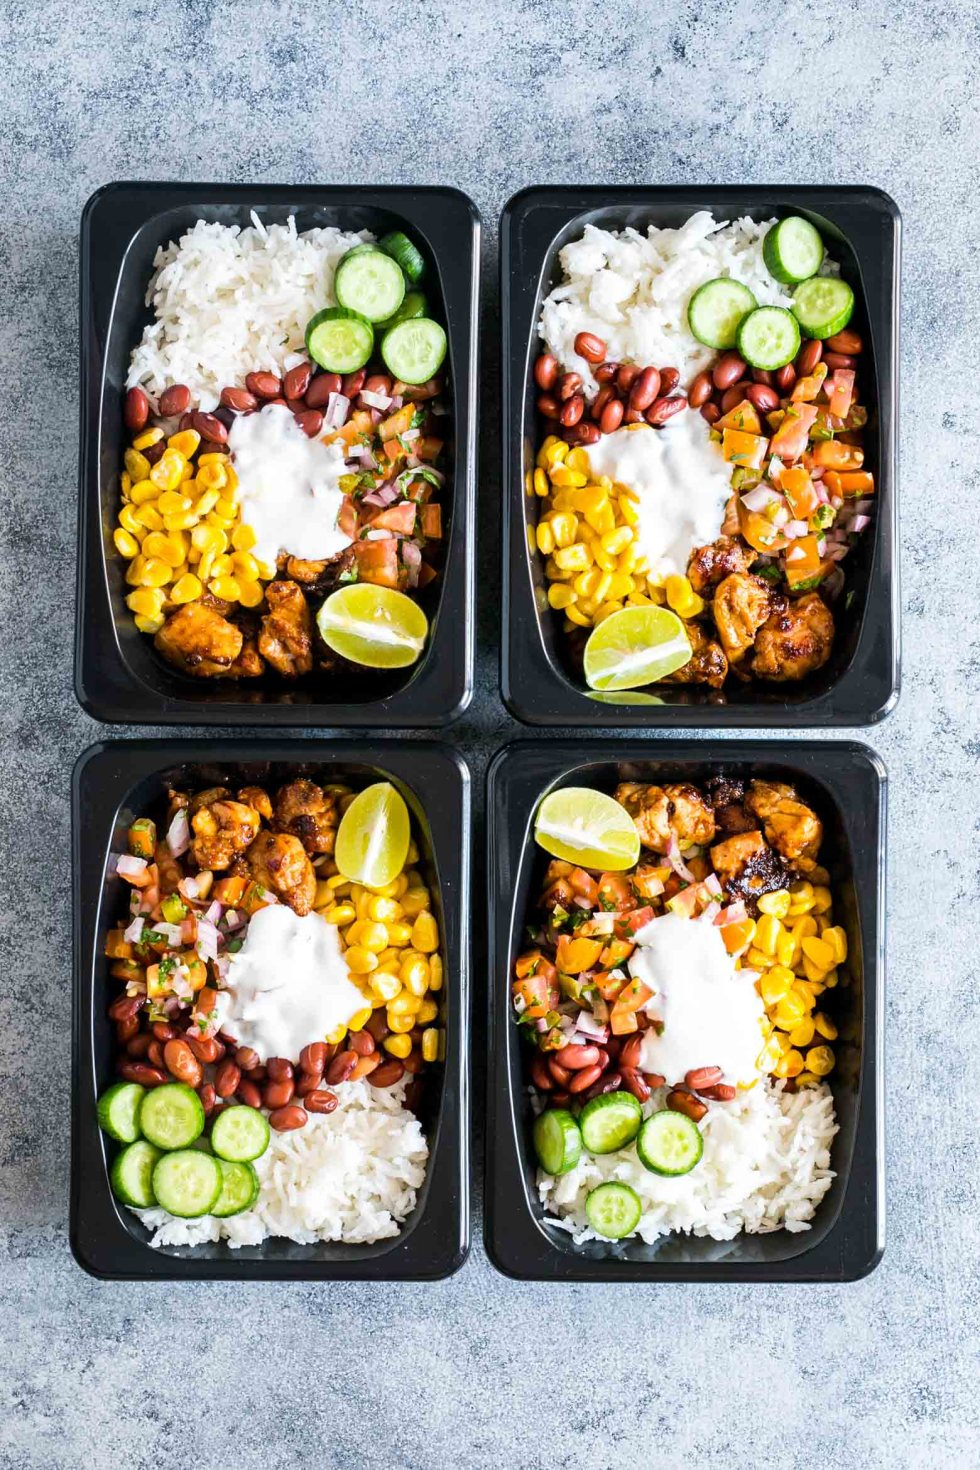 Easy chicken burrito meal prep bowls are perfect for planning weekday work lunches ahead! They are super tasty, gluten free and a healthy way to make sure you have home cooked lunch boxes ready to go.